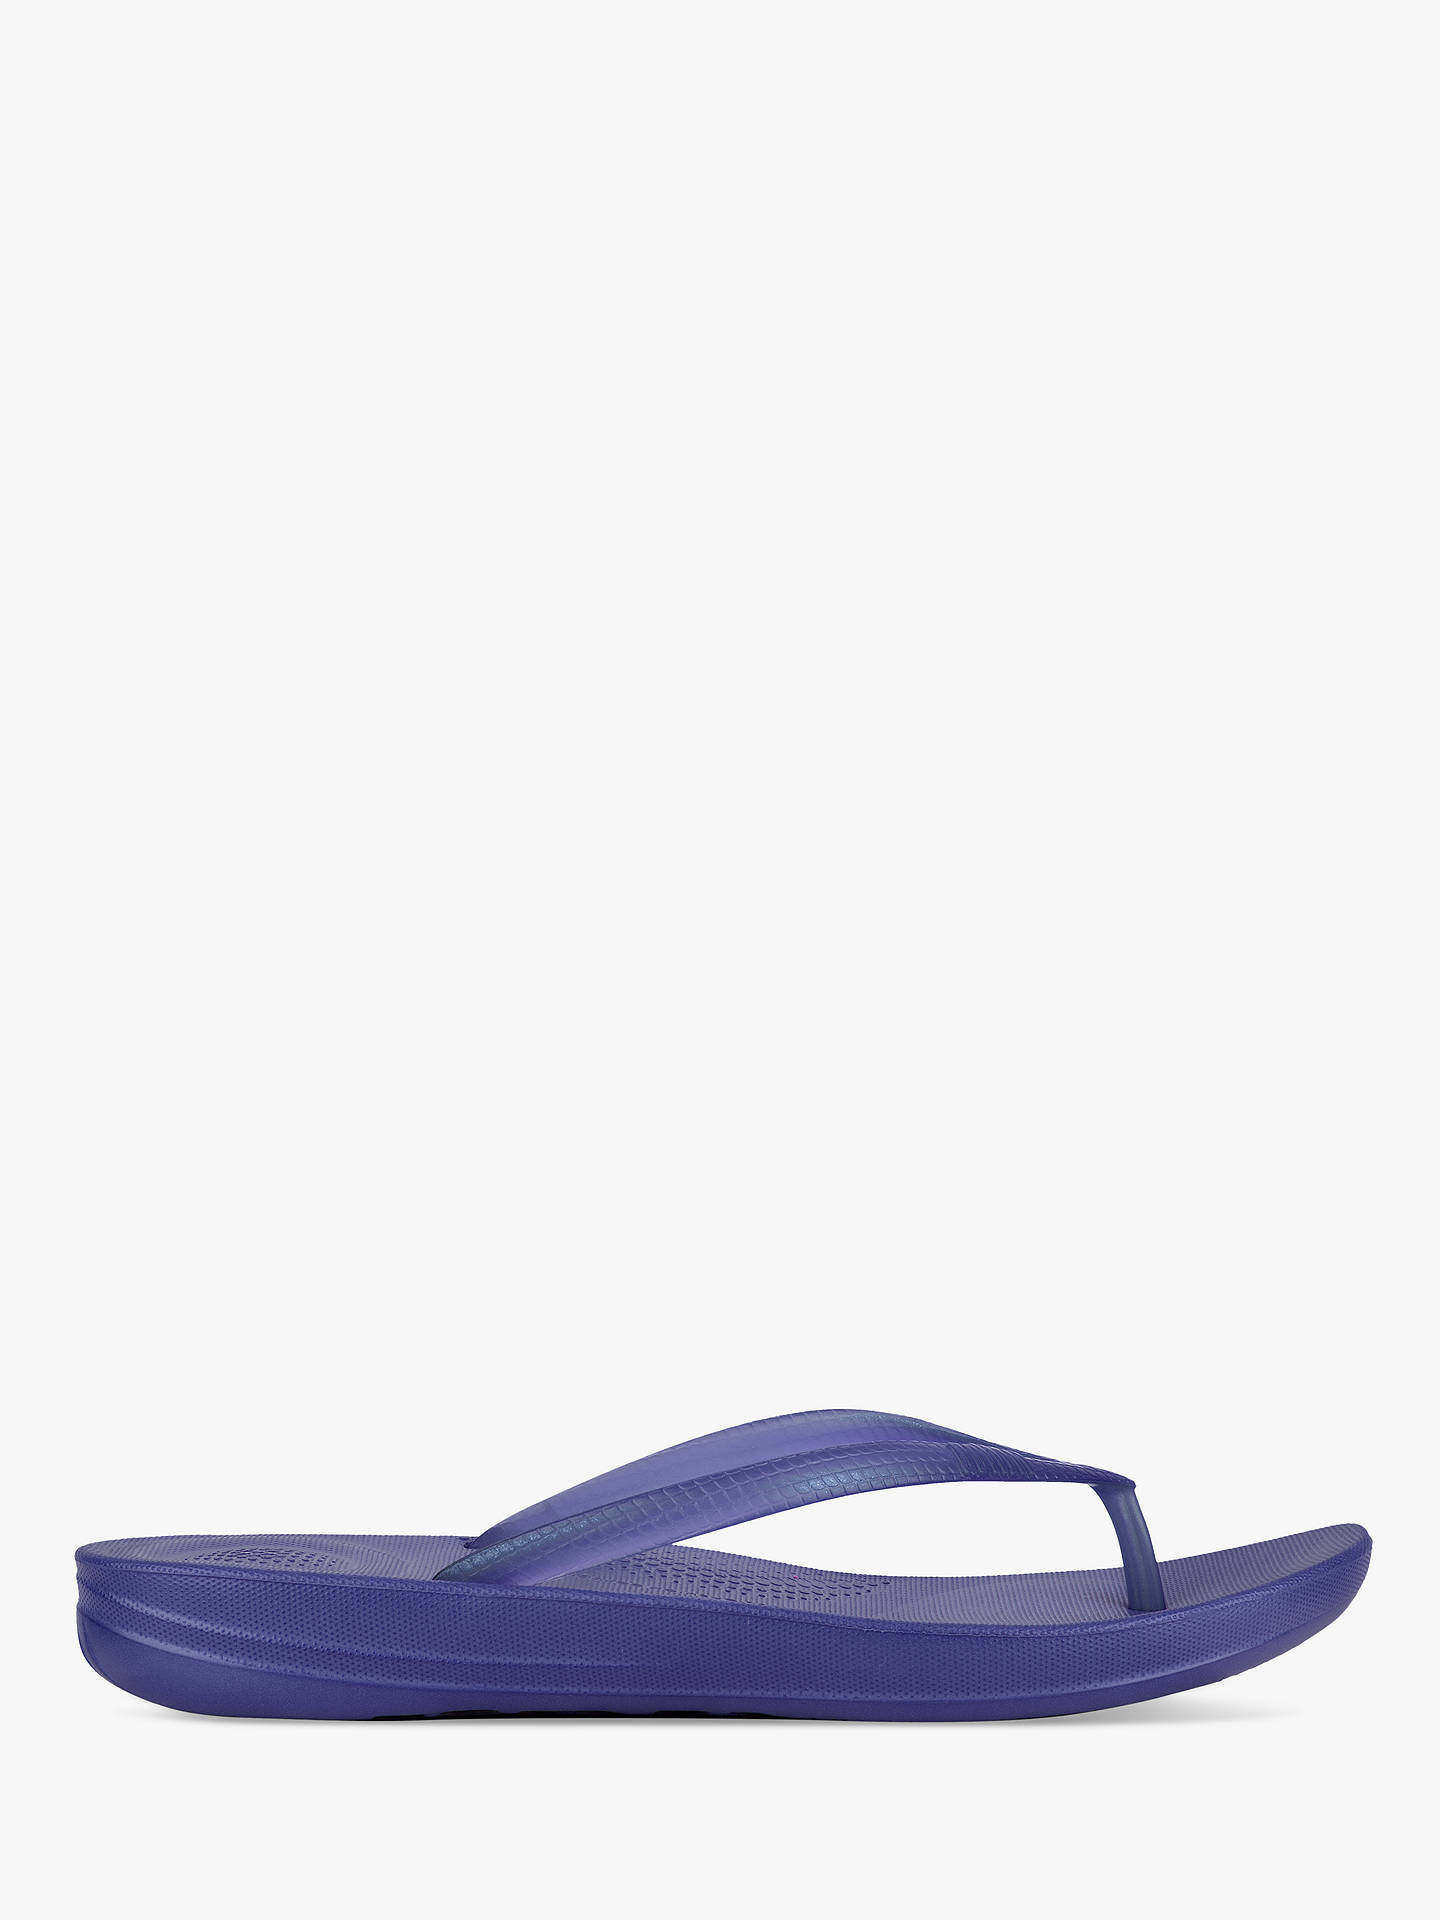 ac2df9f25609 FitFlop Iqushion Pearlised Ergonomic Flip Flops at John Lewis   Partners